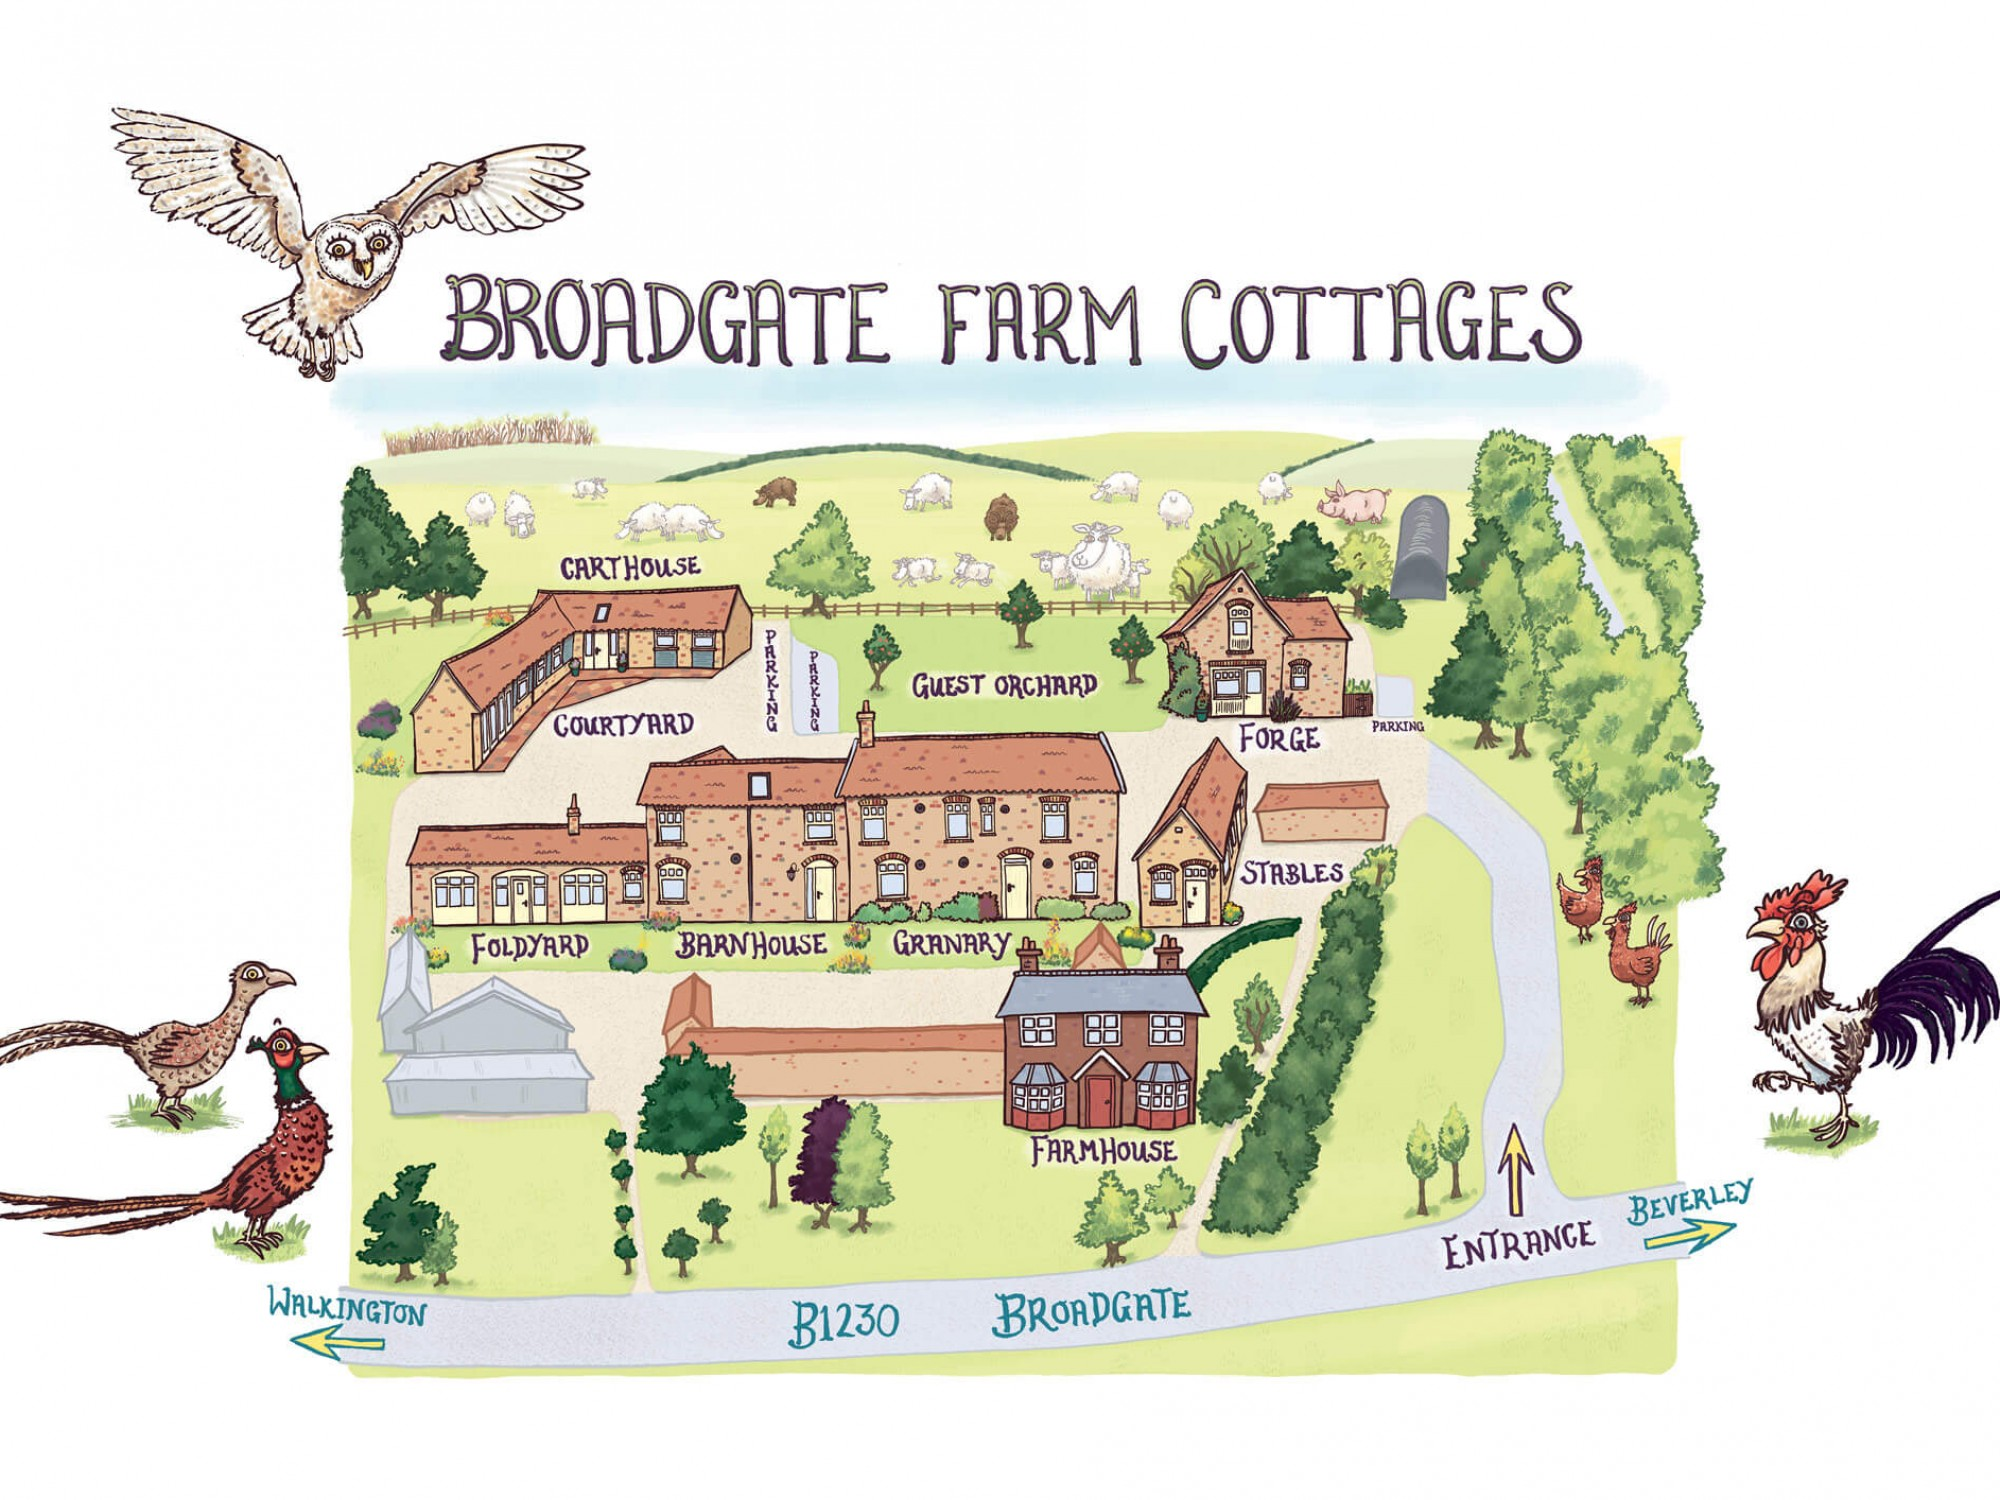 Map of the farm cottages